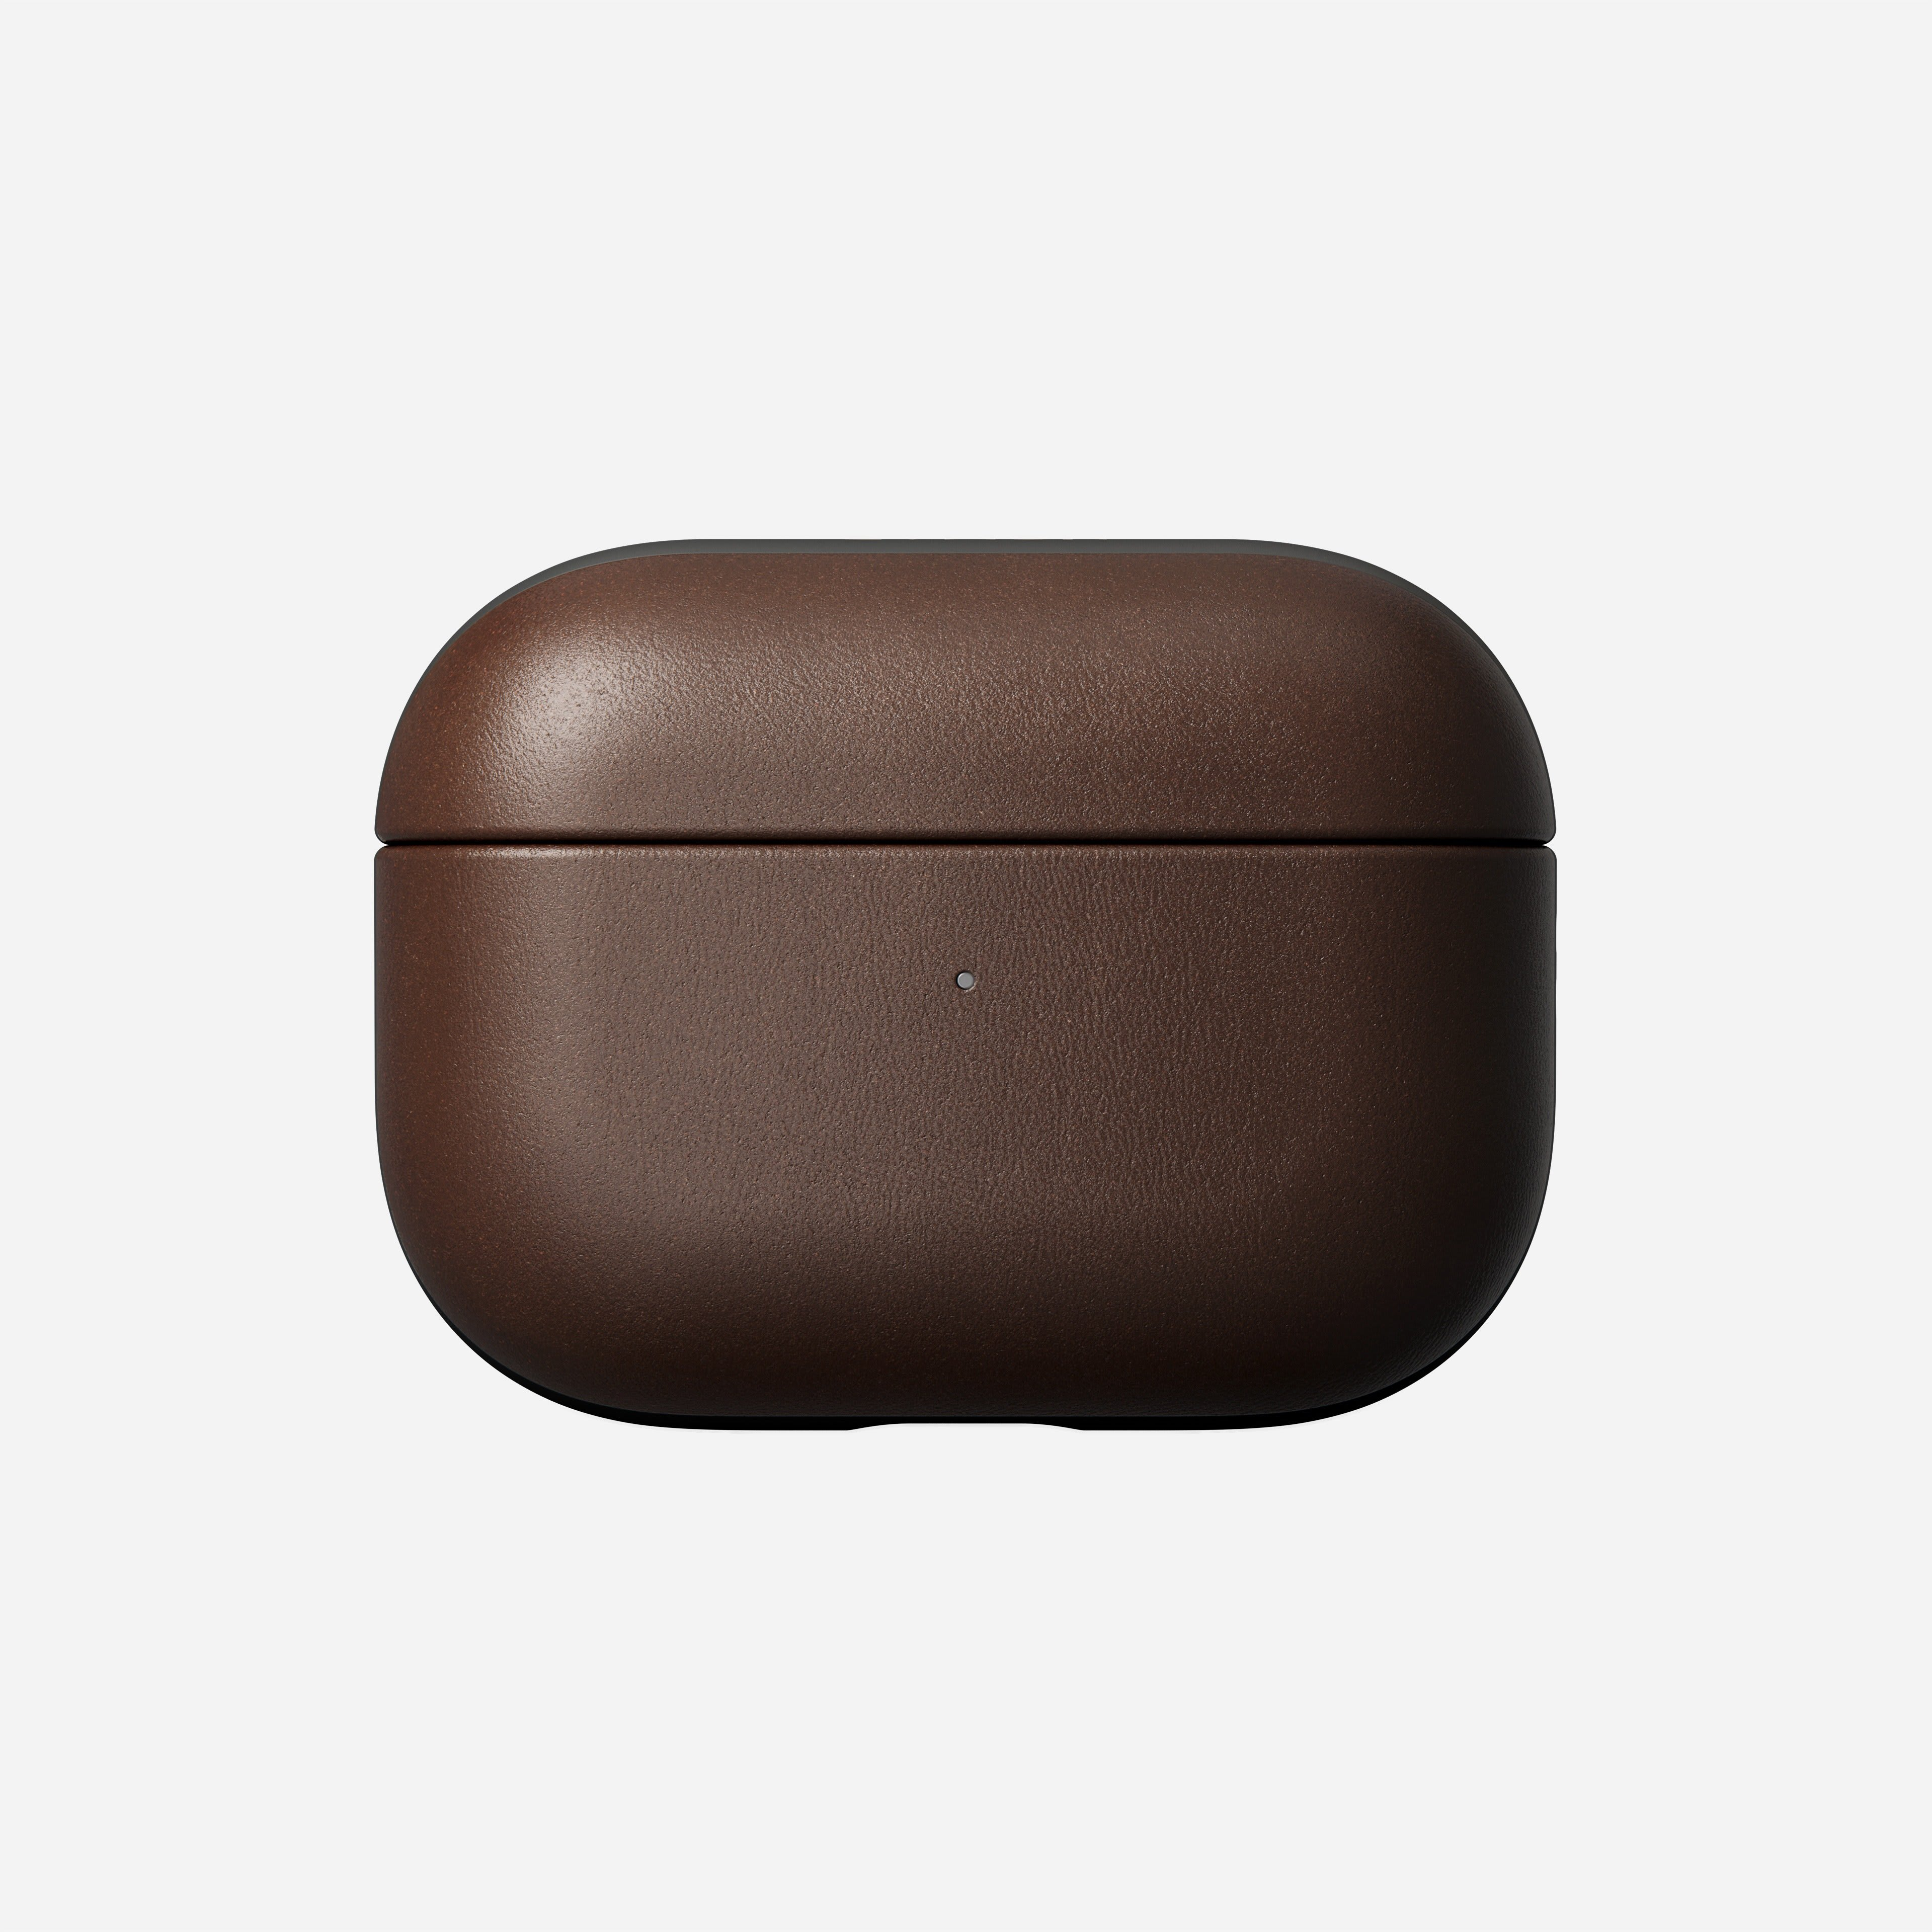 Rugged case airpods pro rustic brown leather